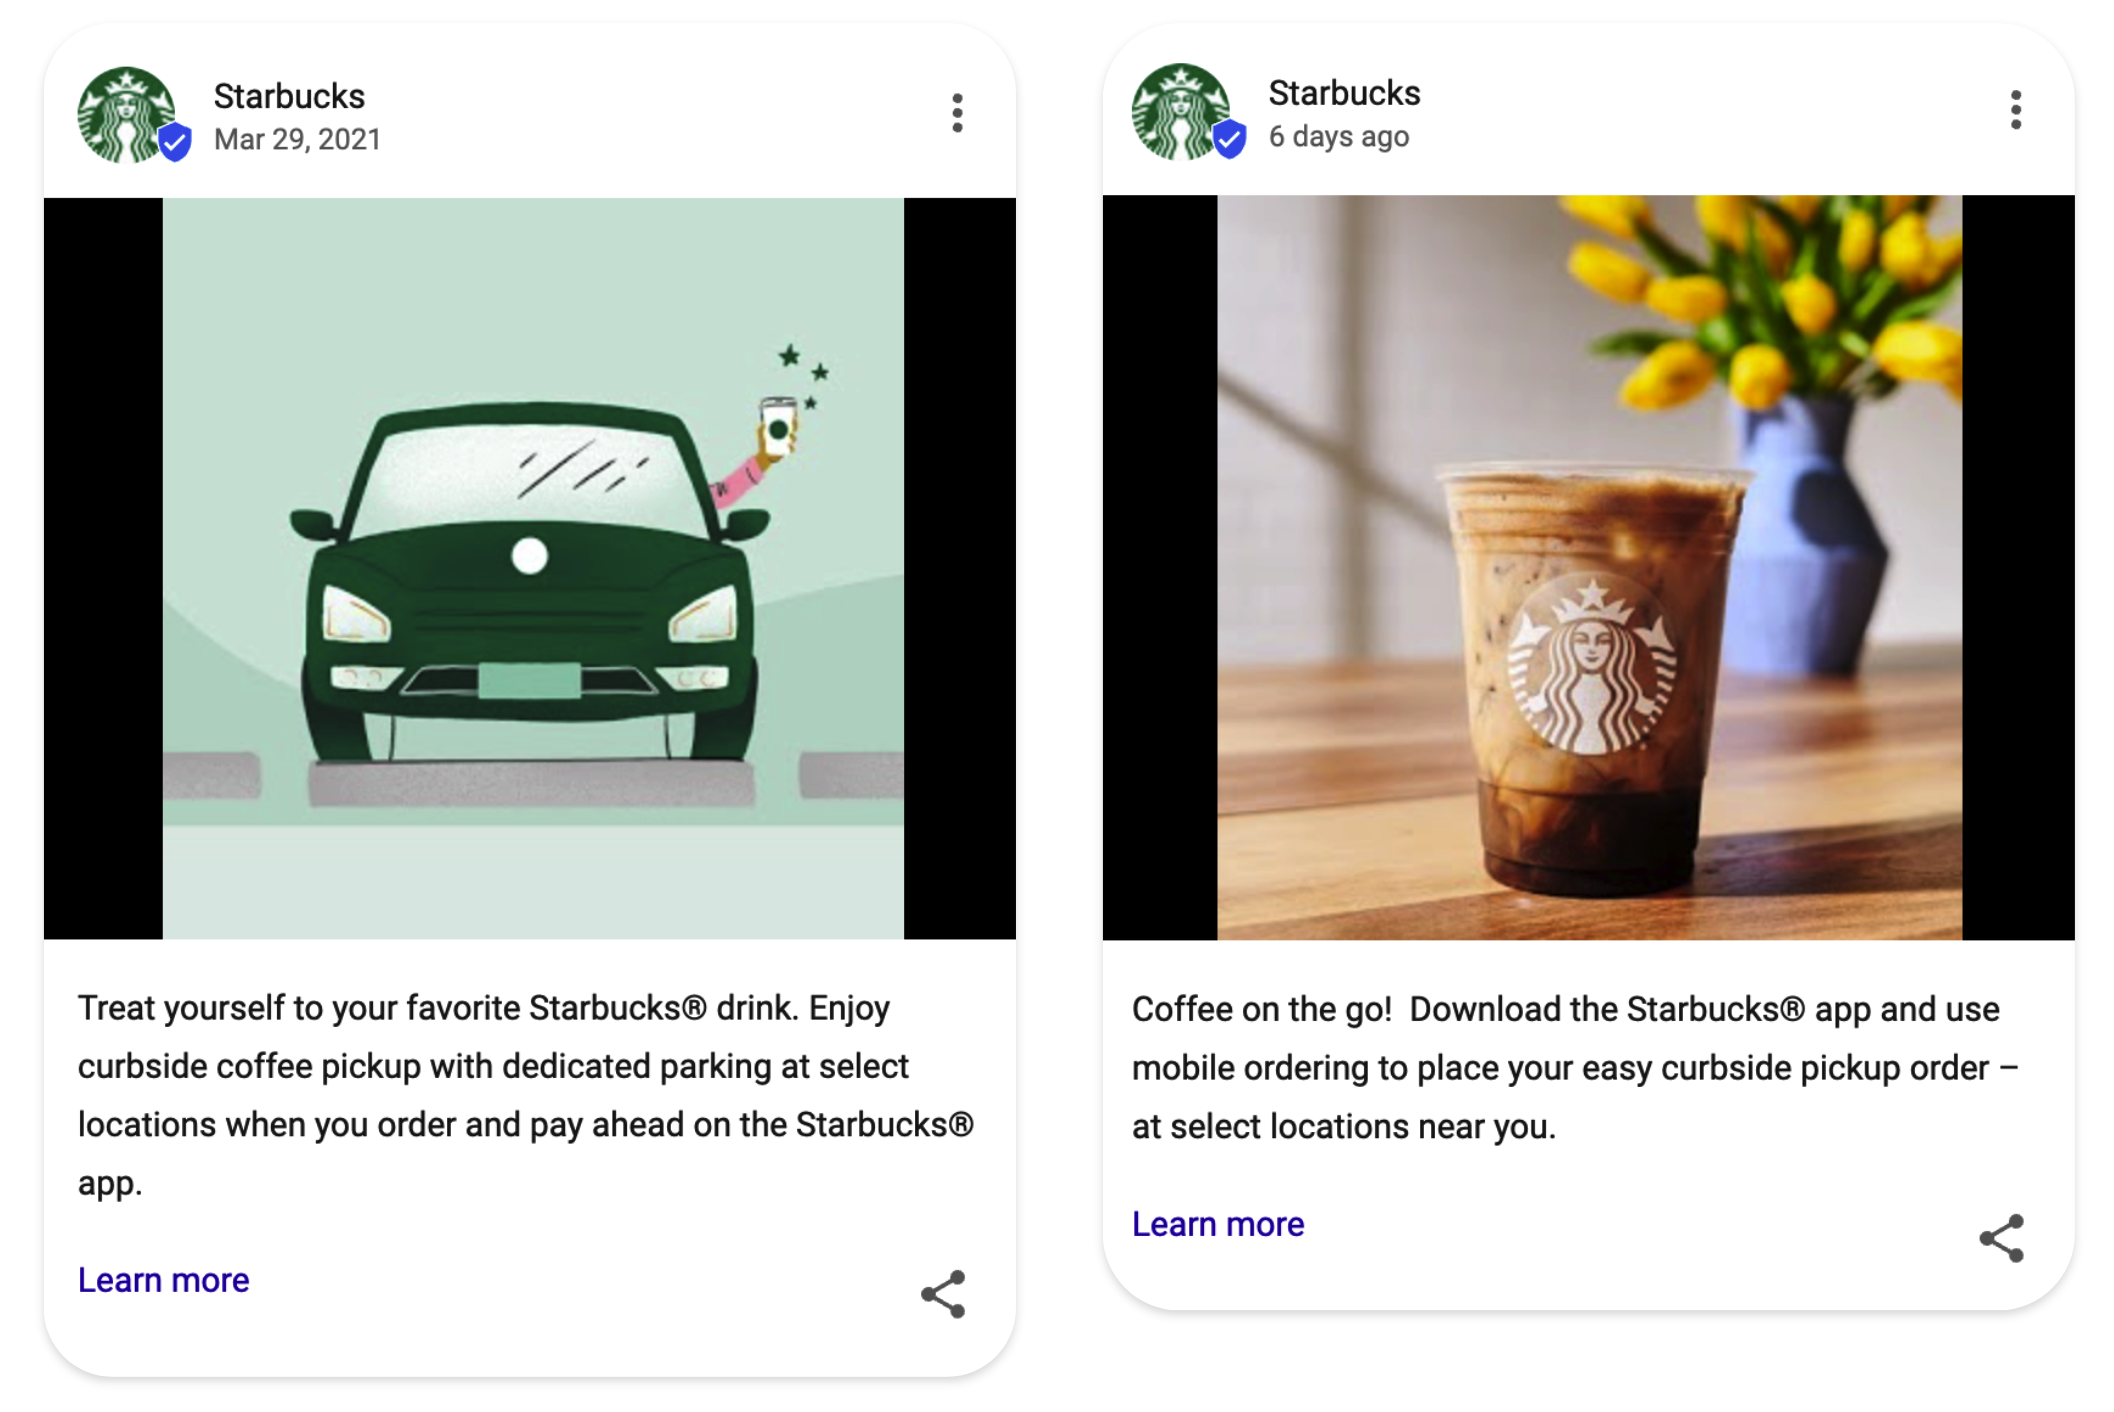 Starbucks Google Posts examples